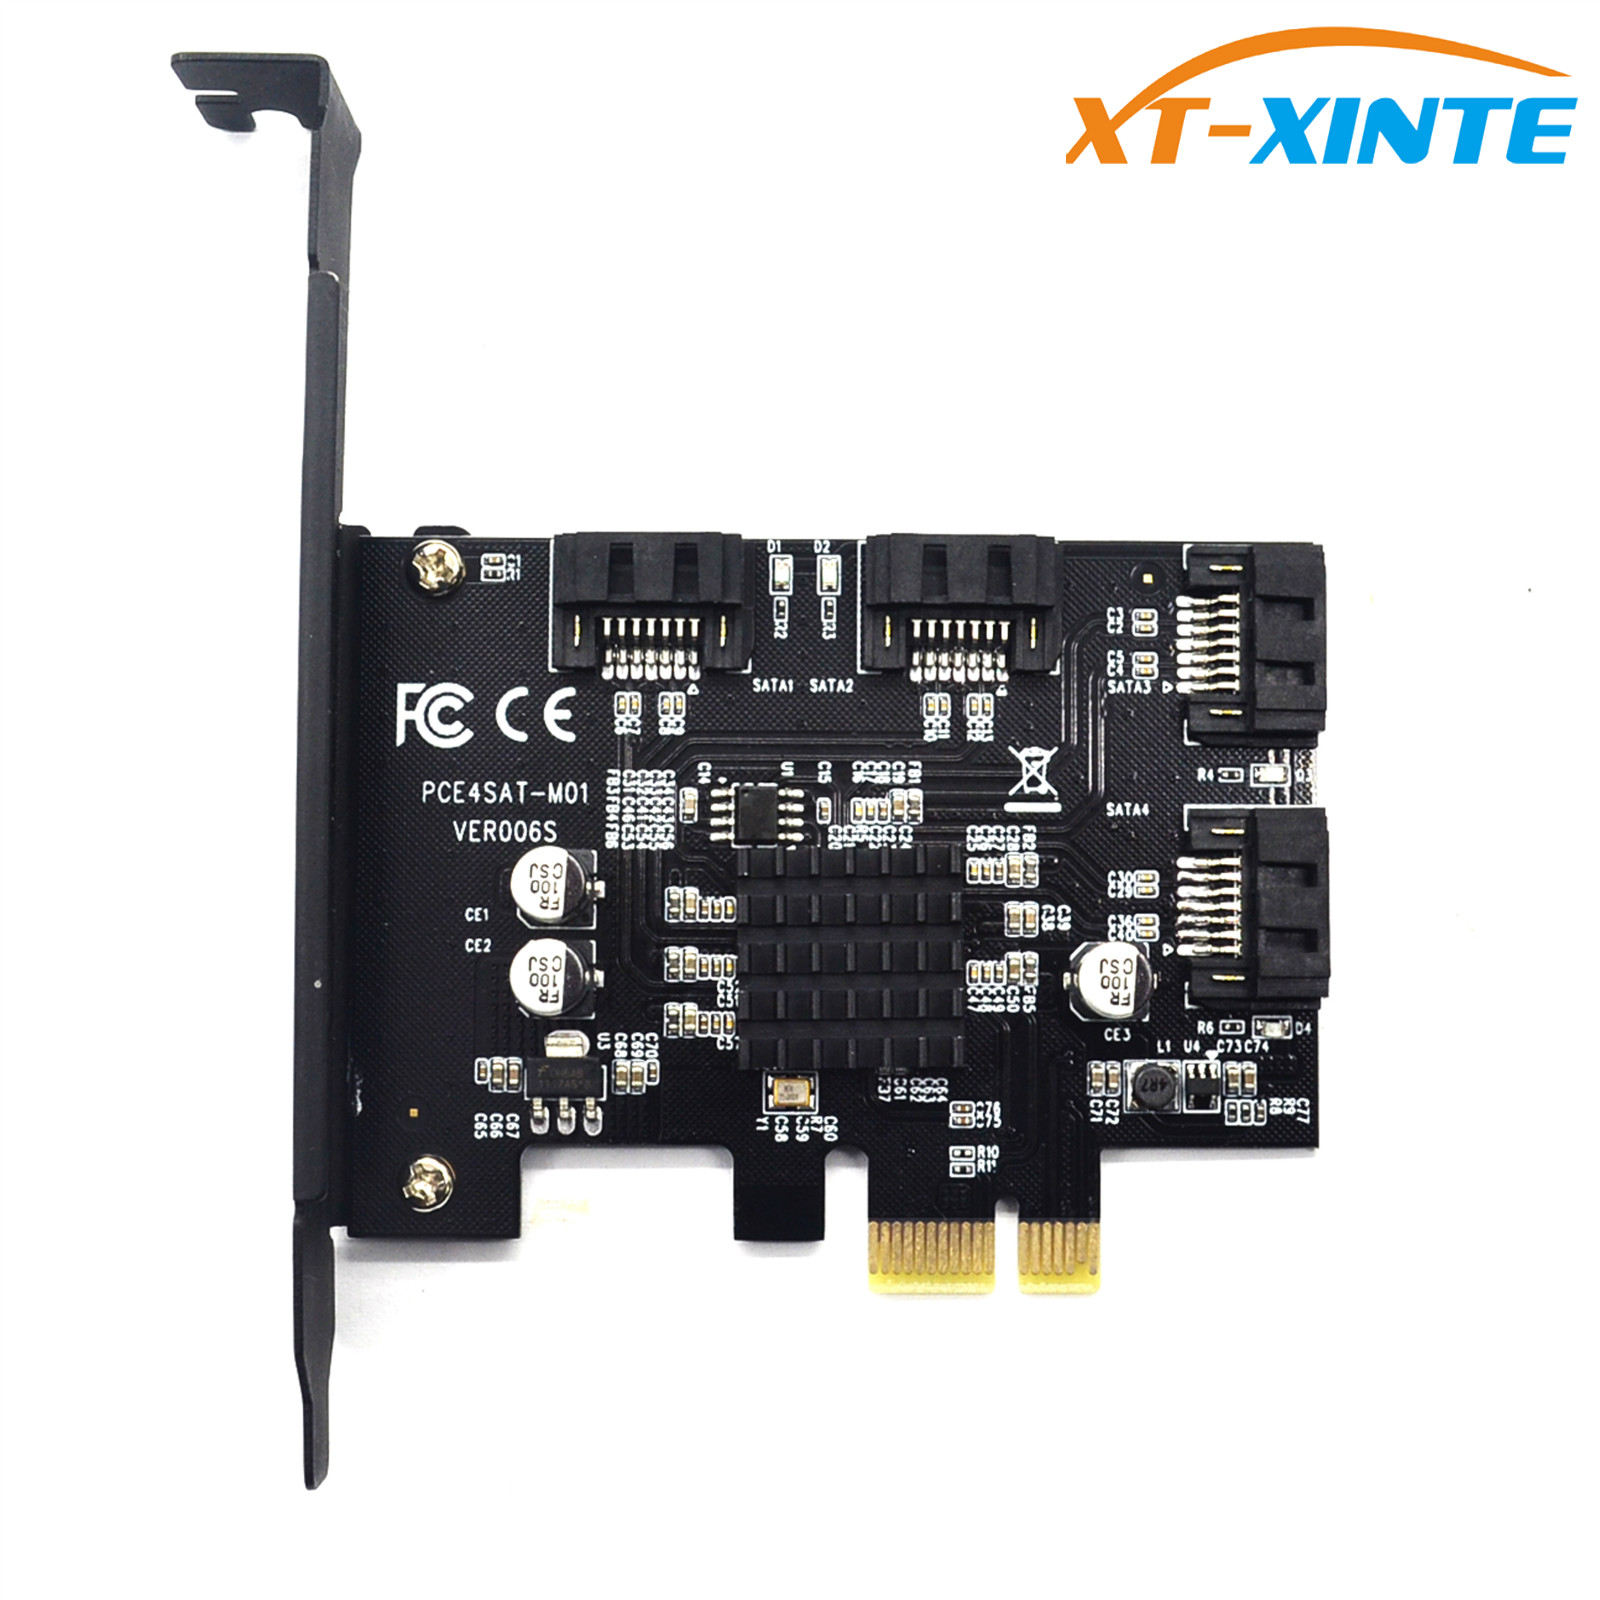 PCI-e To SATA 3.0 4 Ports 6G Expansion Riser Card PCIE SATAIII 3.0 Converter Adapter For HDD SSD IPFS For Marvell 88SE9215